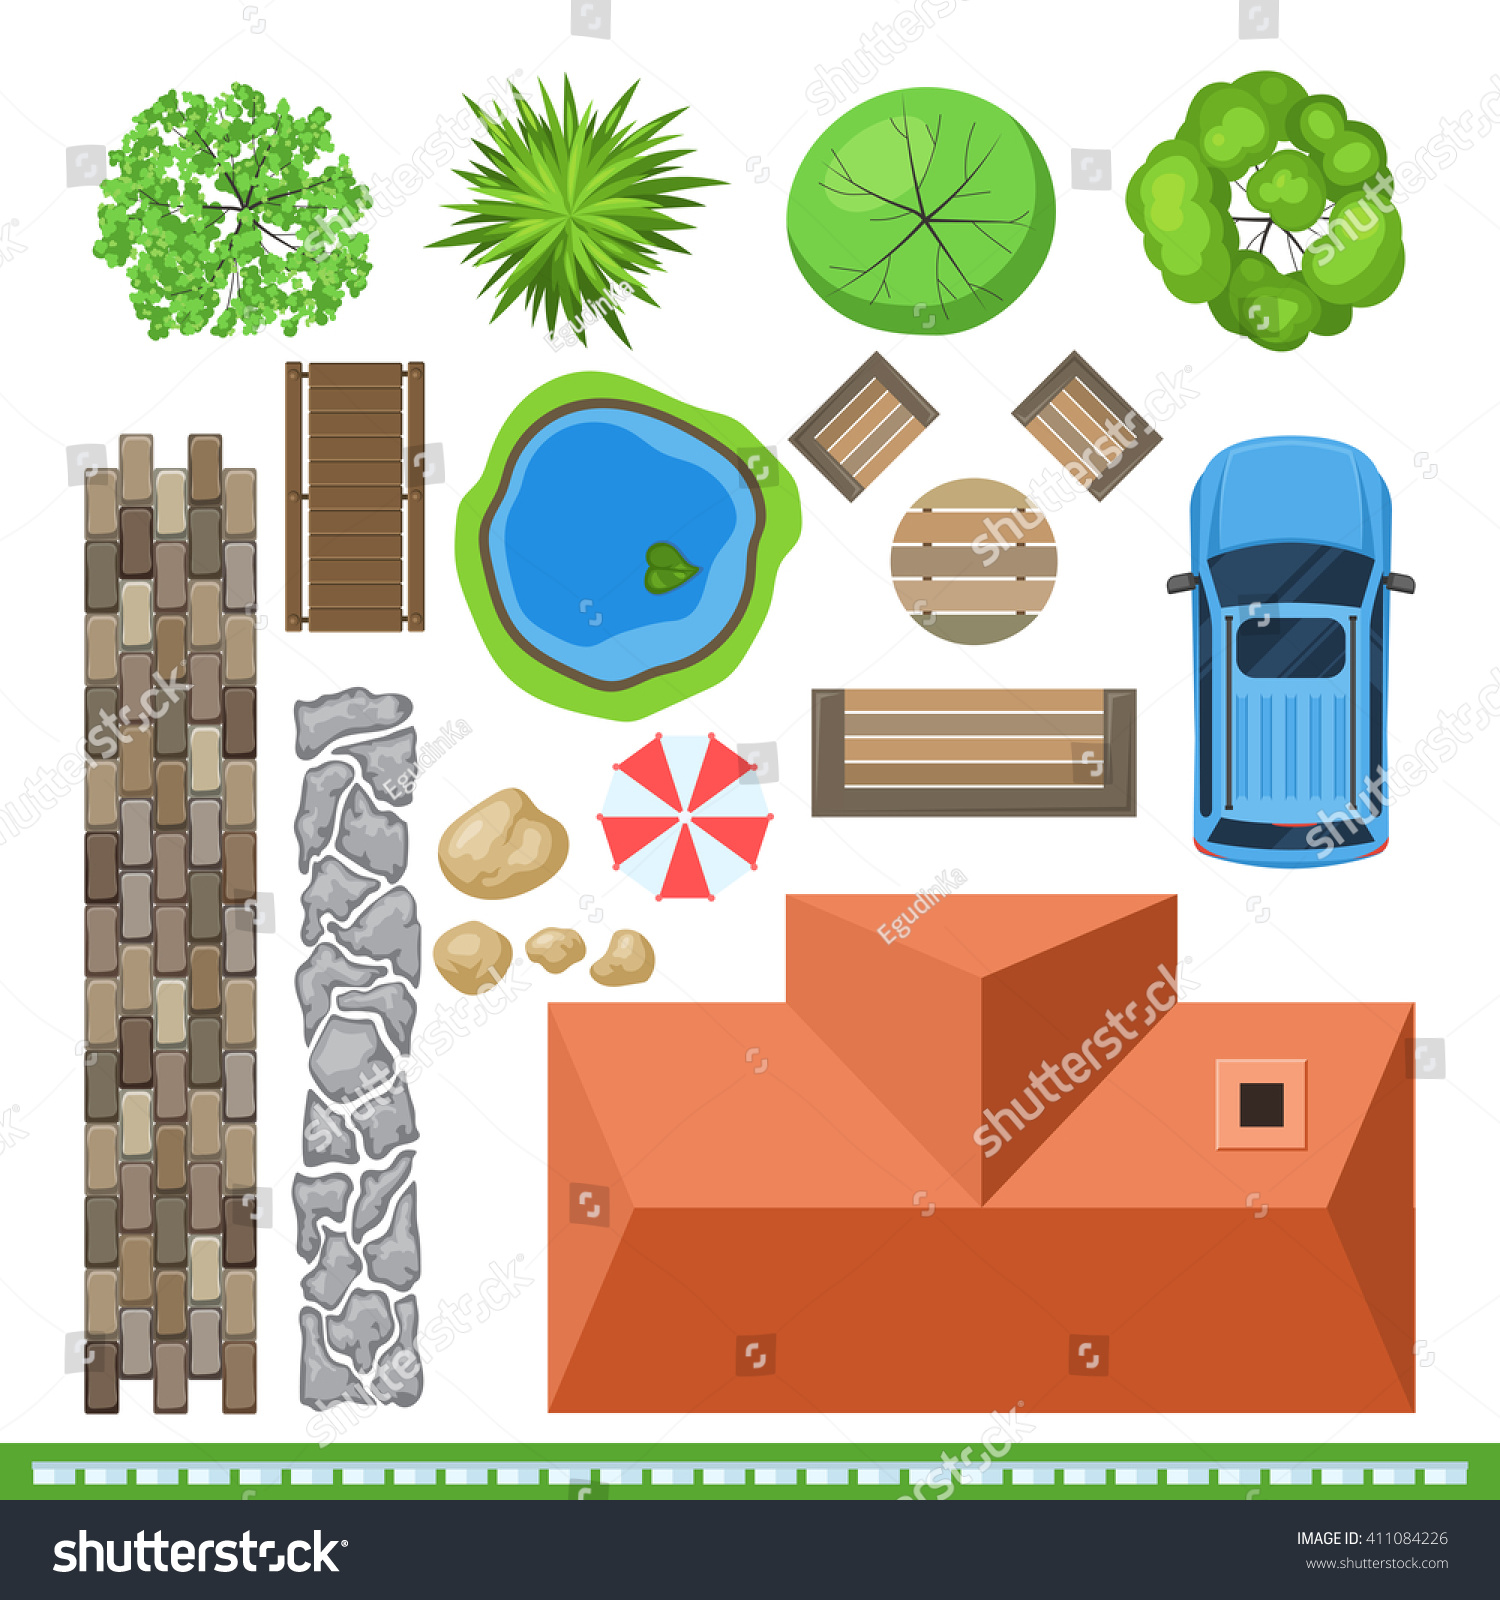 Landscape elements project design top view stock for House design top view